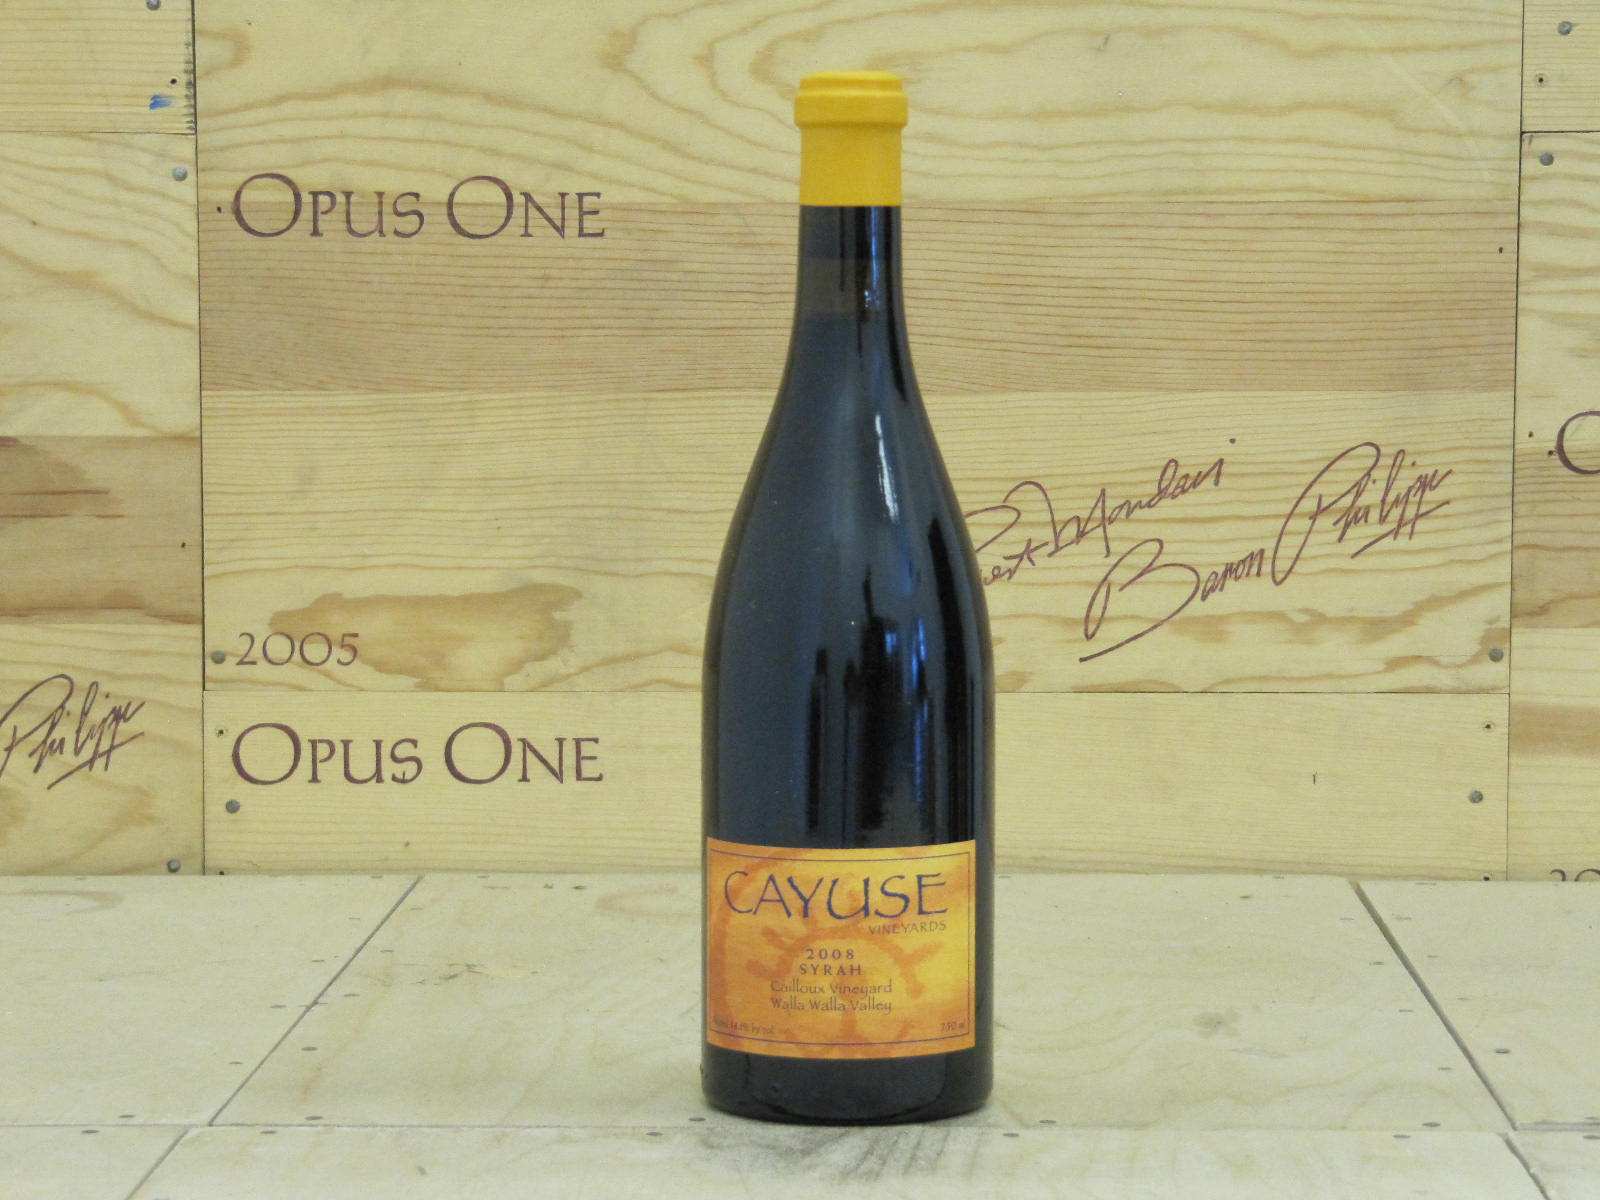 2008 Cayuse Syrah Cailloux Vineyard, Walla Walla Valley RP--97